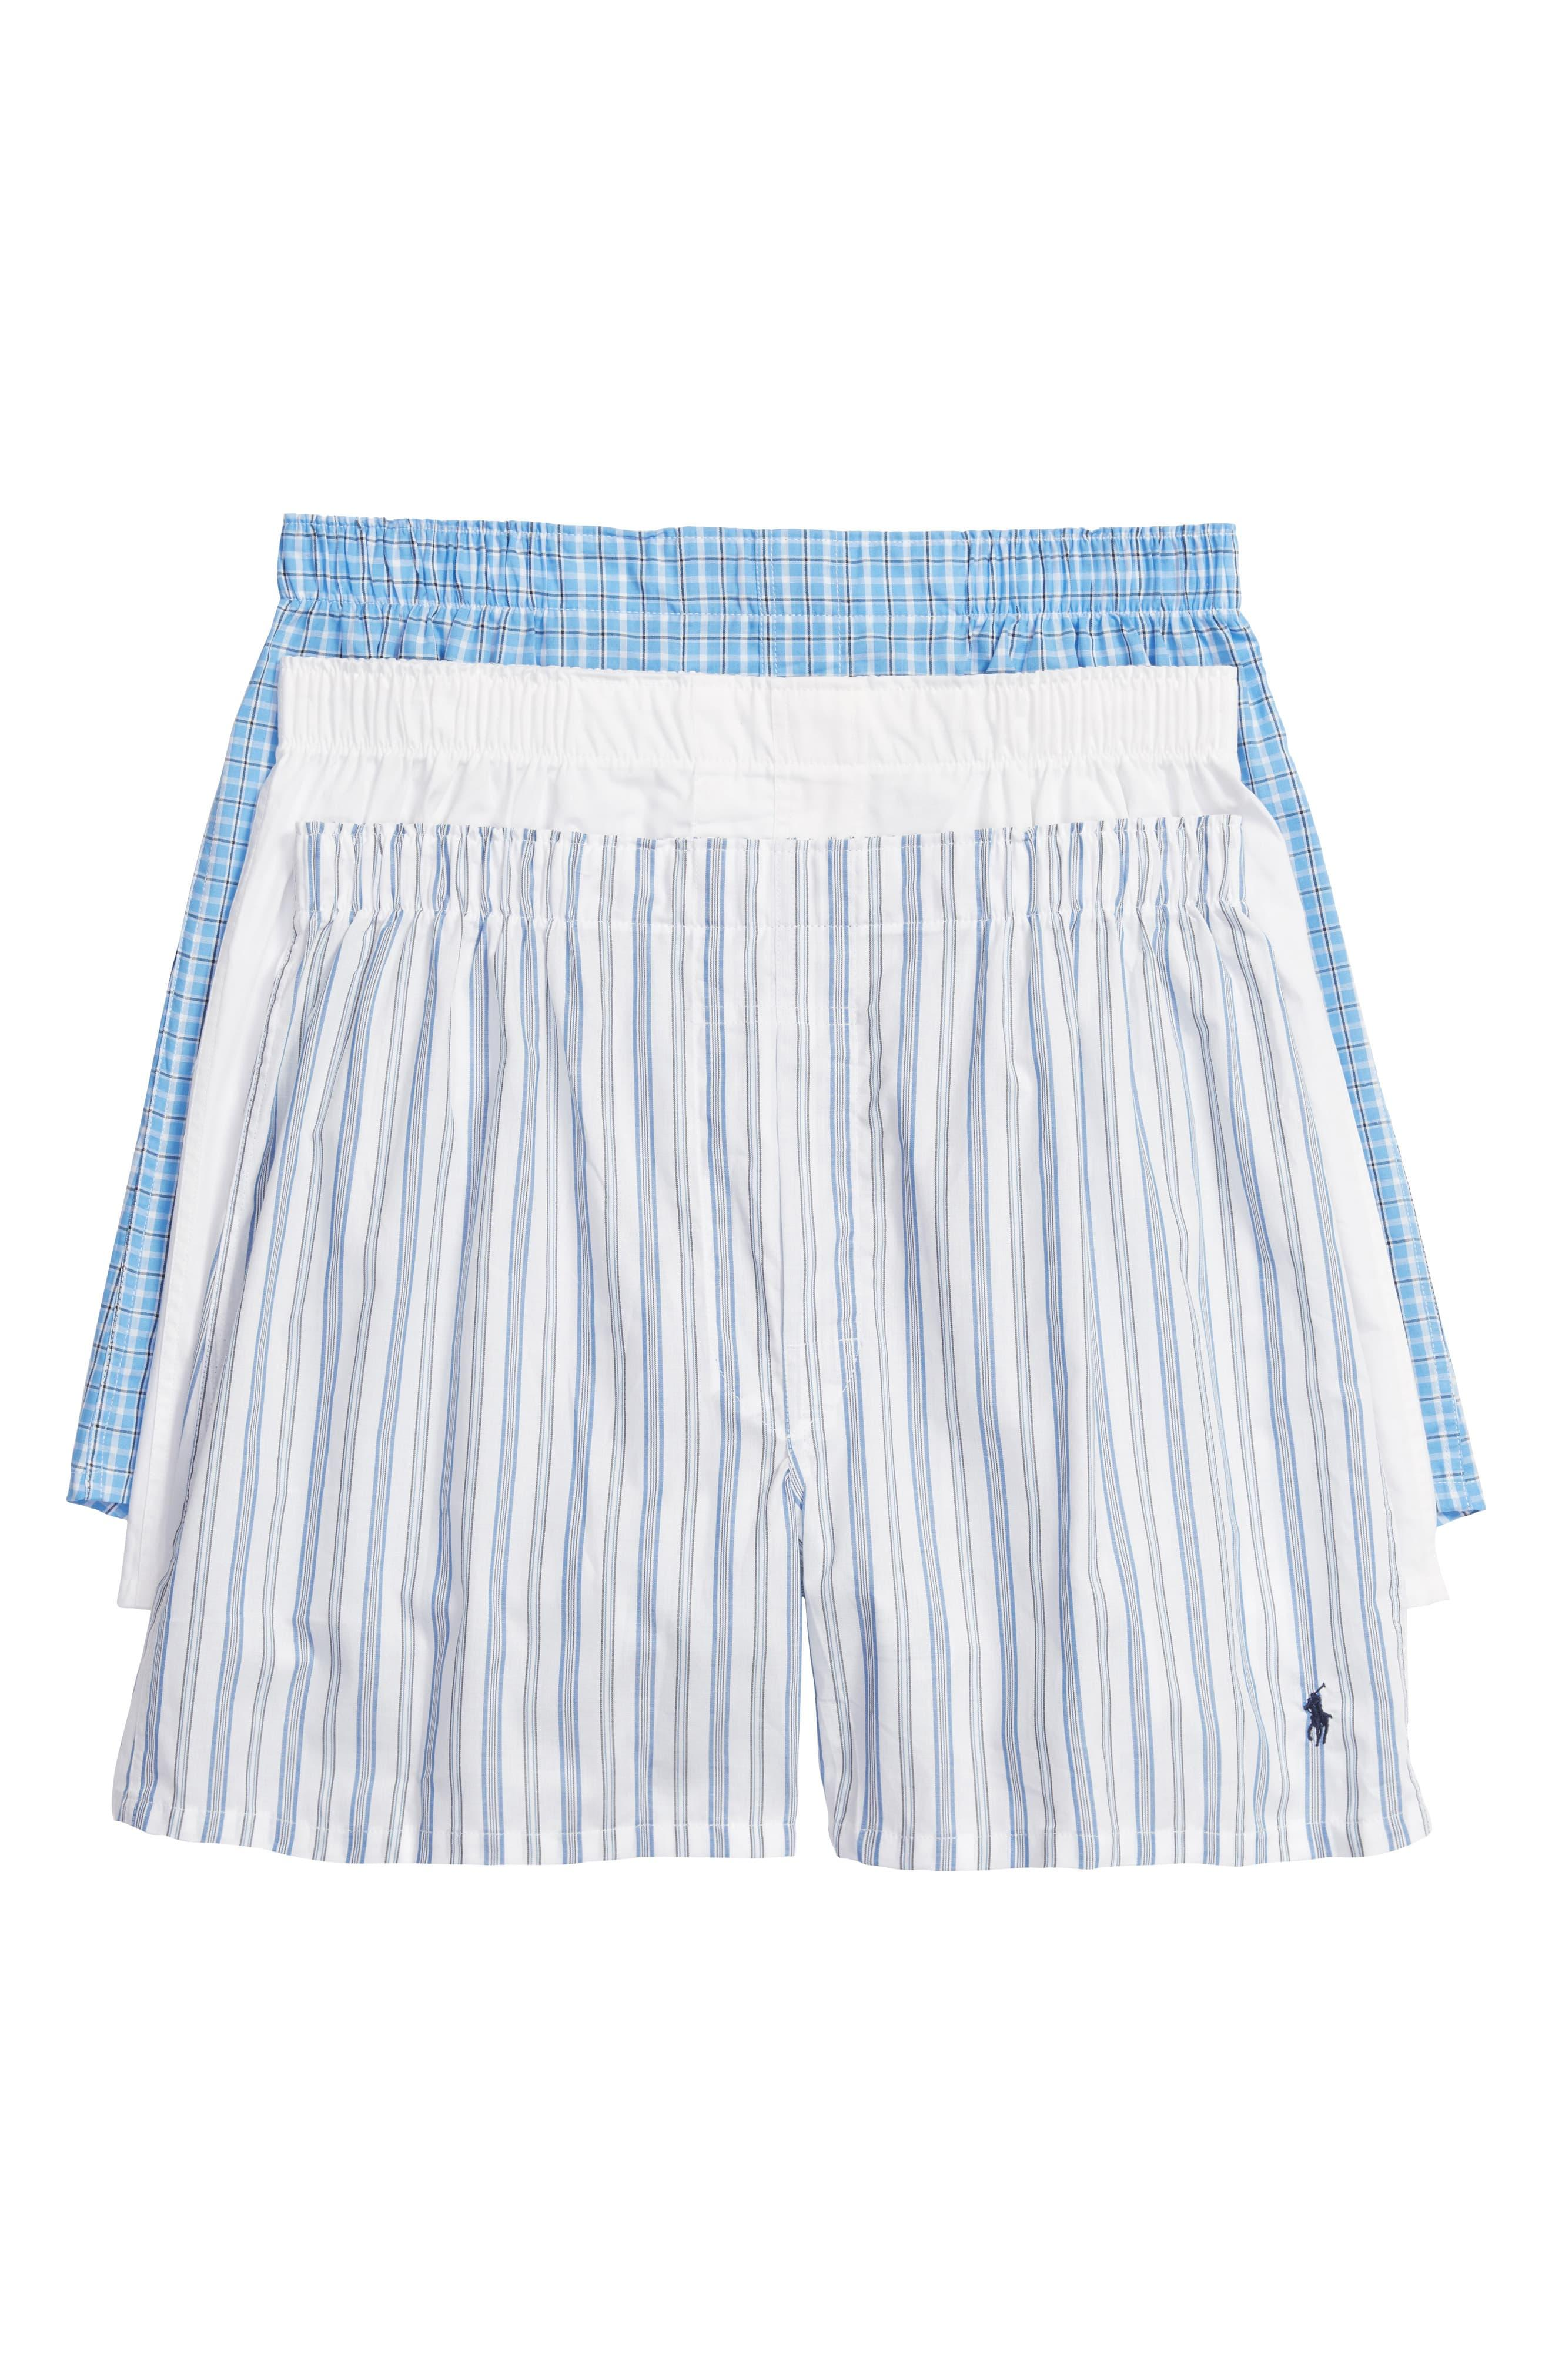 BoxersNone Lauren Cotton By Pack Ralph Polo 3 vNnm08wO